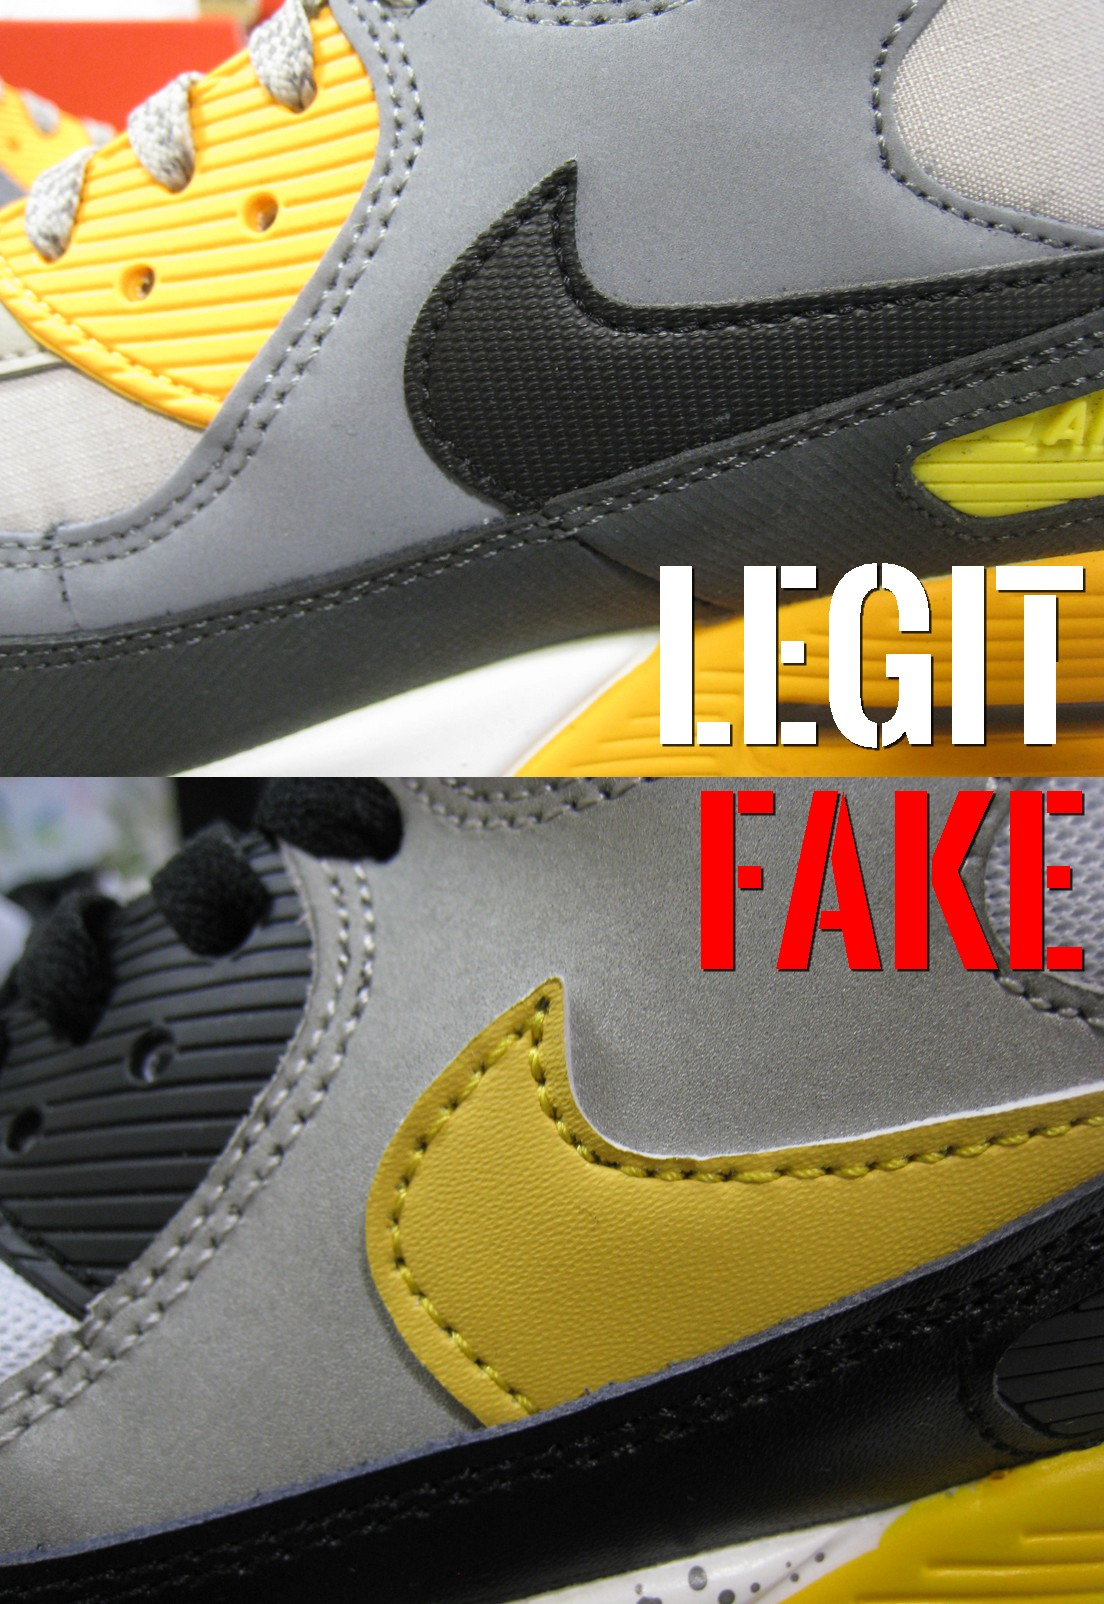 wholesale dealer a55b8 af695 podróbka Nike Air Max 90 swoosh